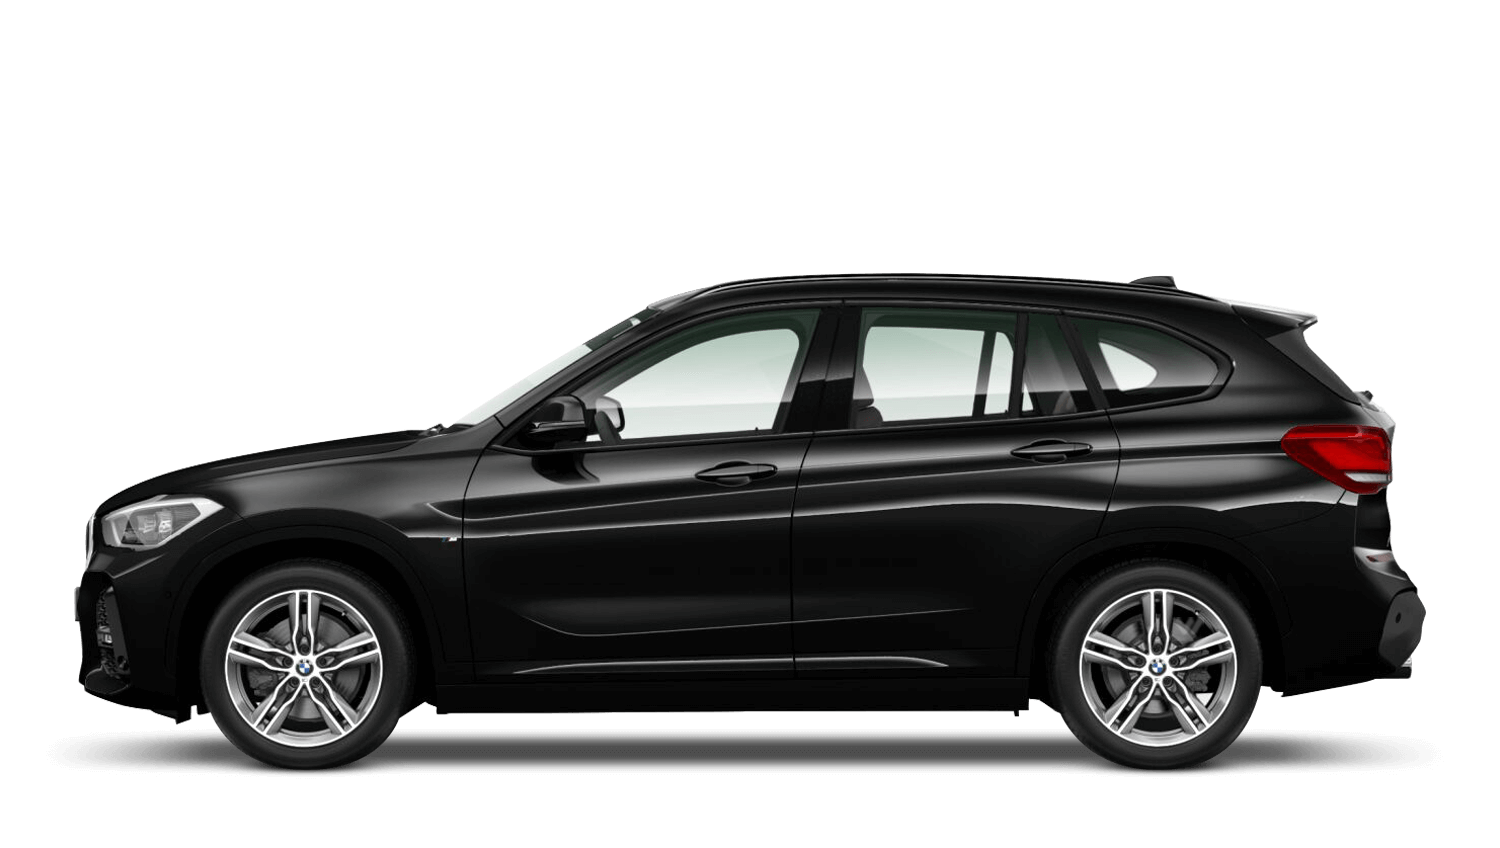 bmw x1 m sport finance available barons chandlers bmw. Black Bedroom Furniture Sets. Home Design Ideas